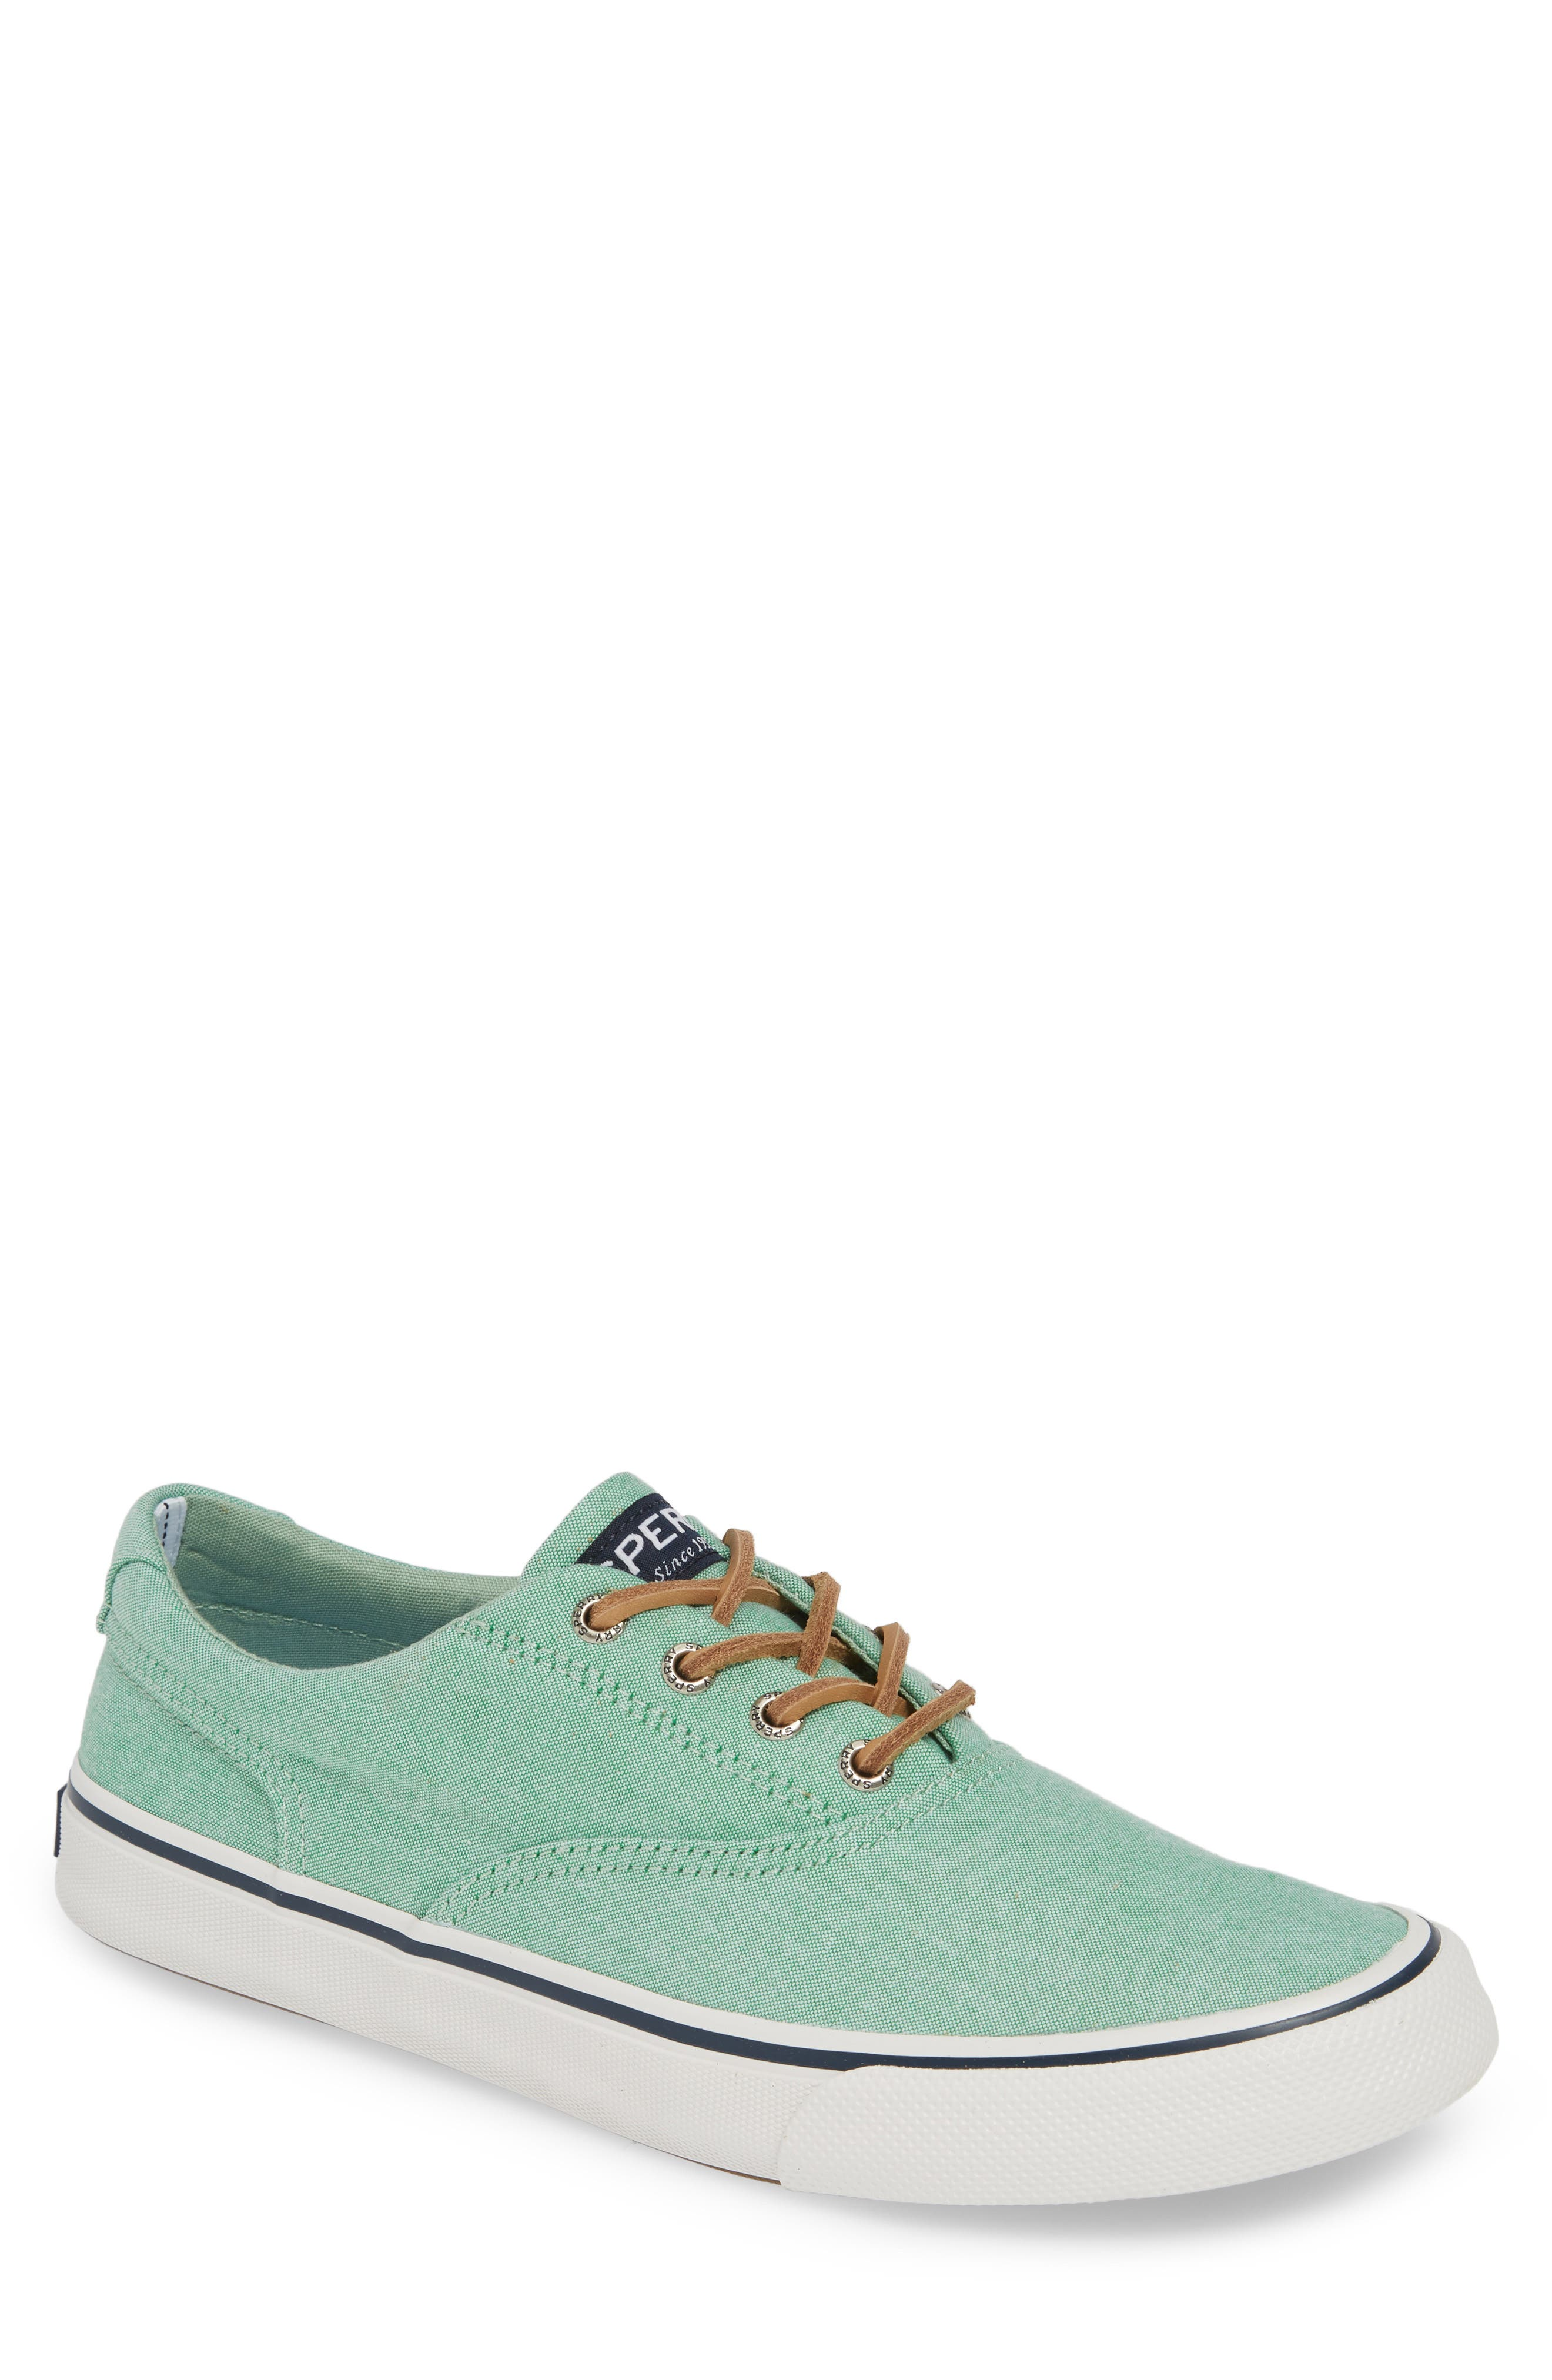 SPERRY, Striper II CVO Oxford Sneaker, Main thumbnail 1, color, GREEN